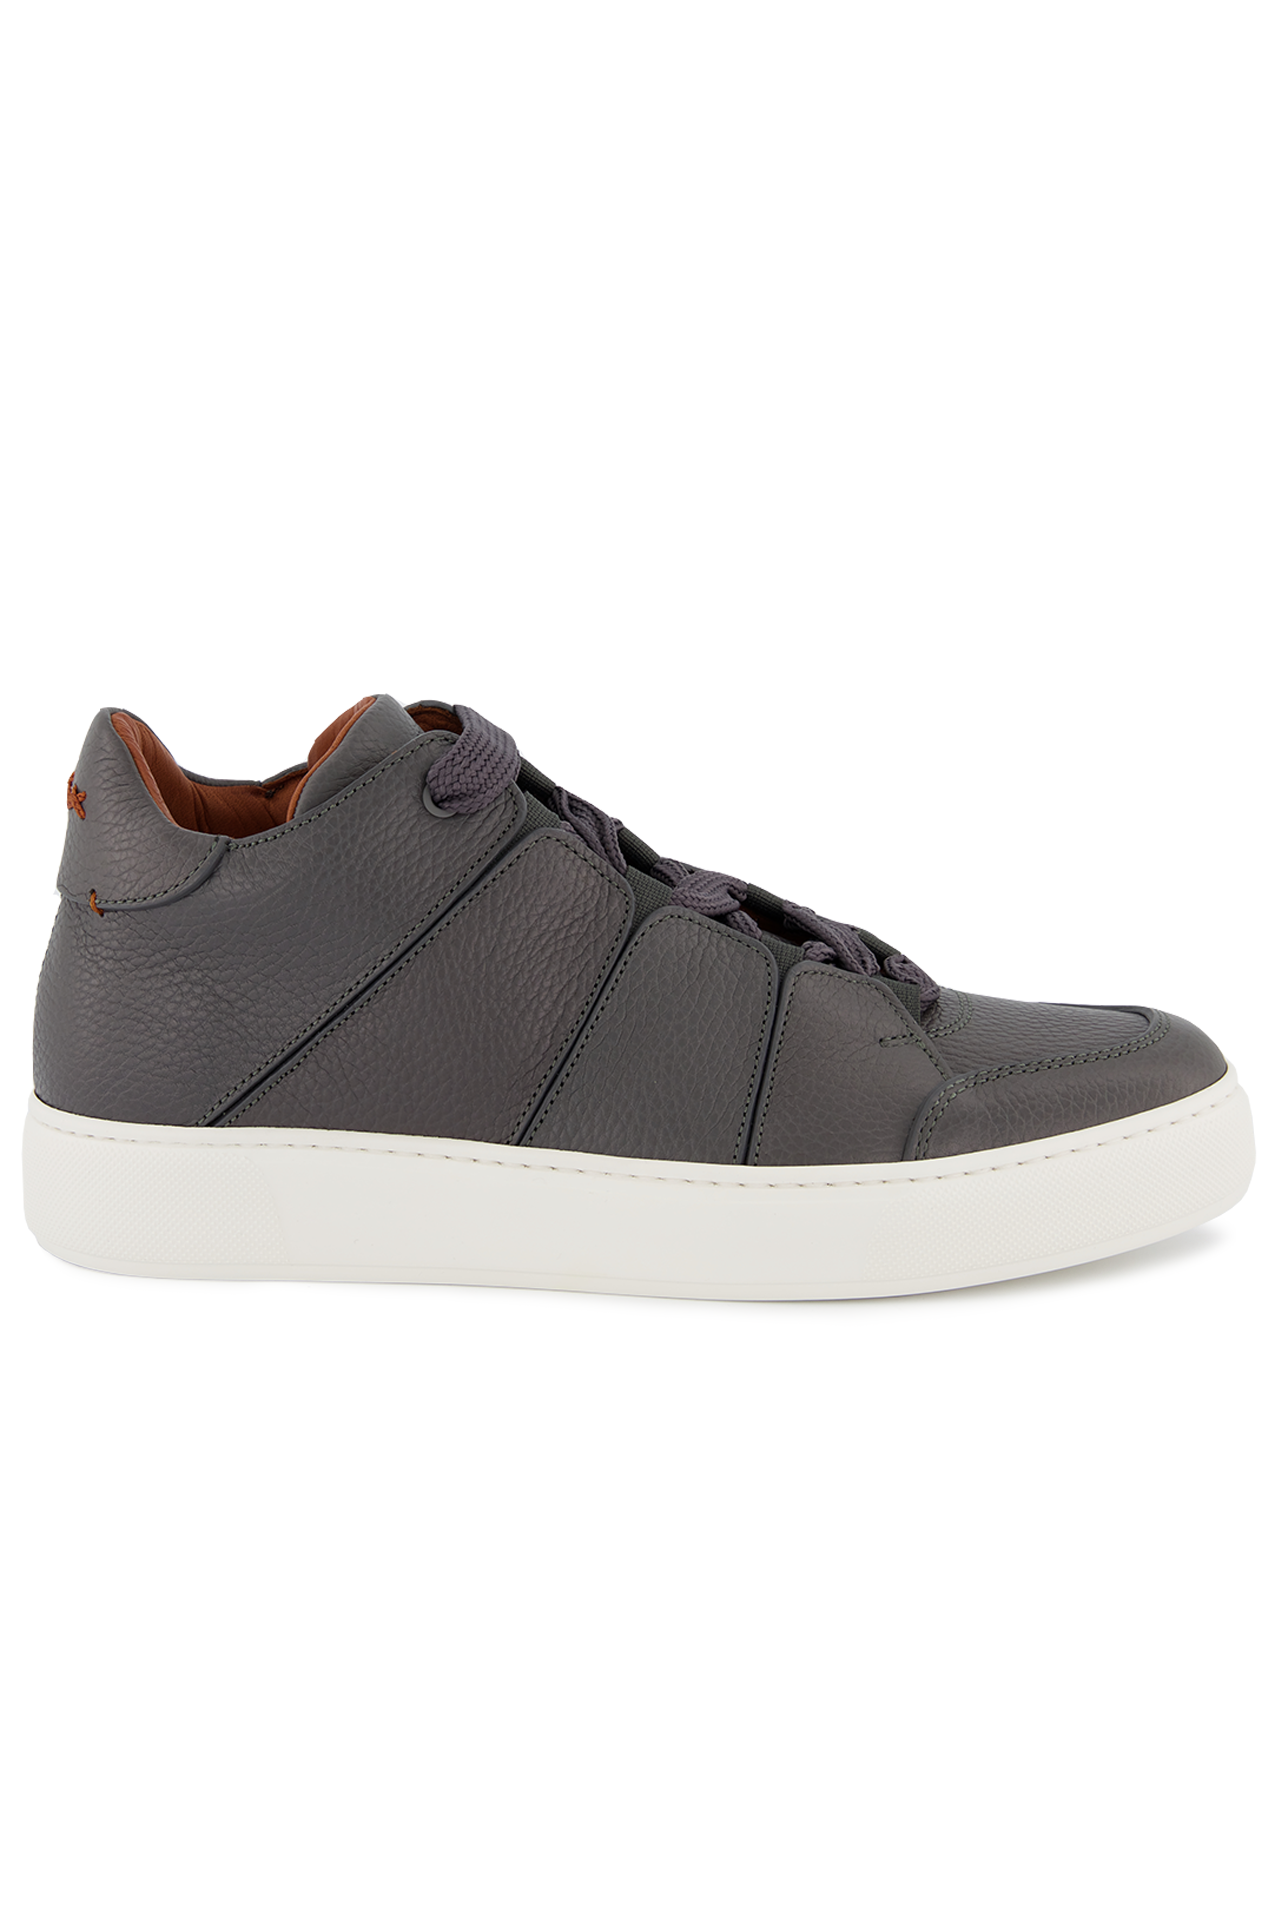 Side view image of Ermenegildo Zegna Tiziano Leather Hi Top Sneaker